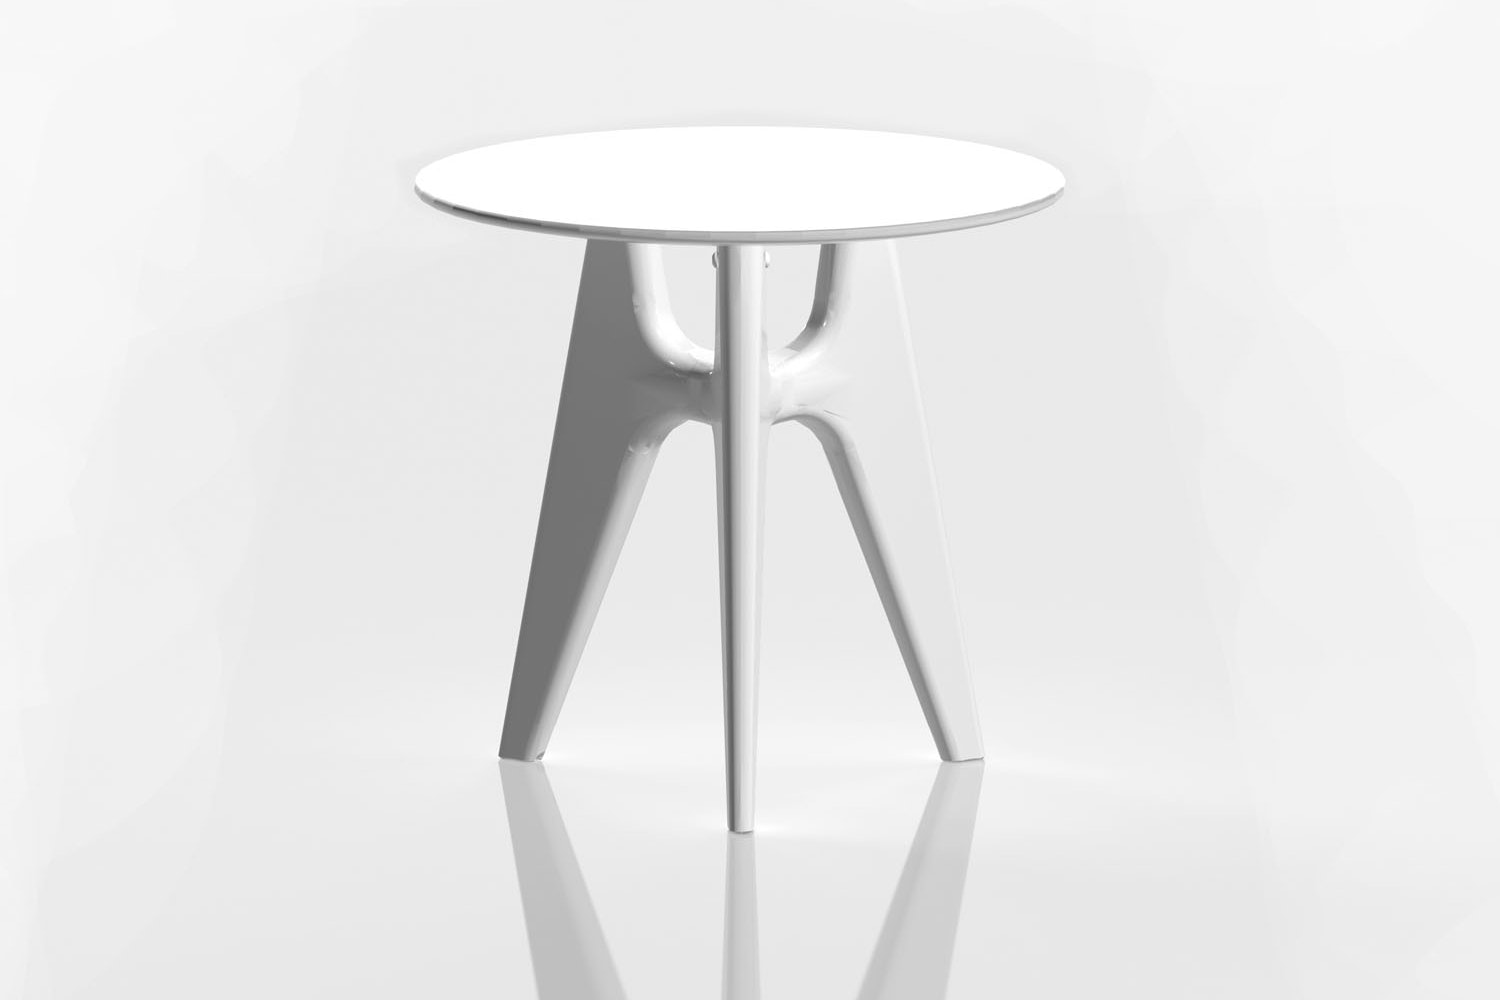 Notre Dame Table by Raffaella Mangiarotti for Serralunga